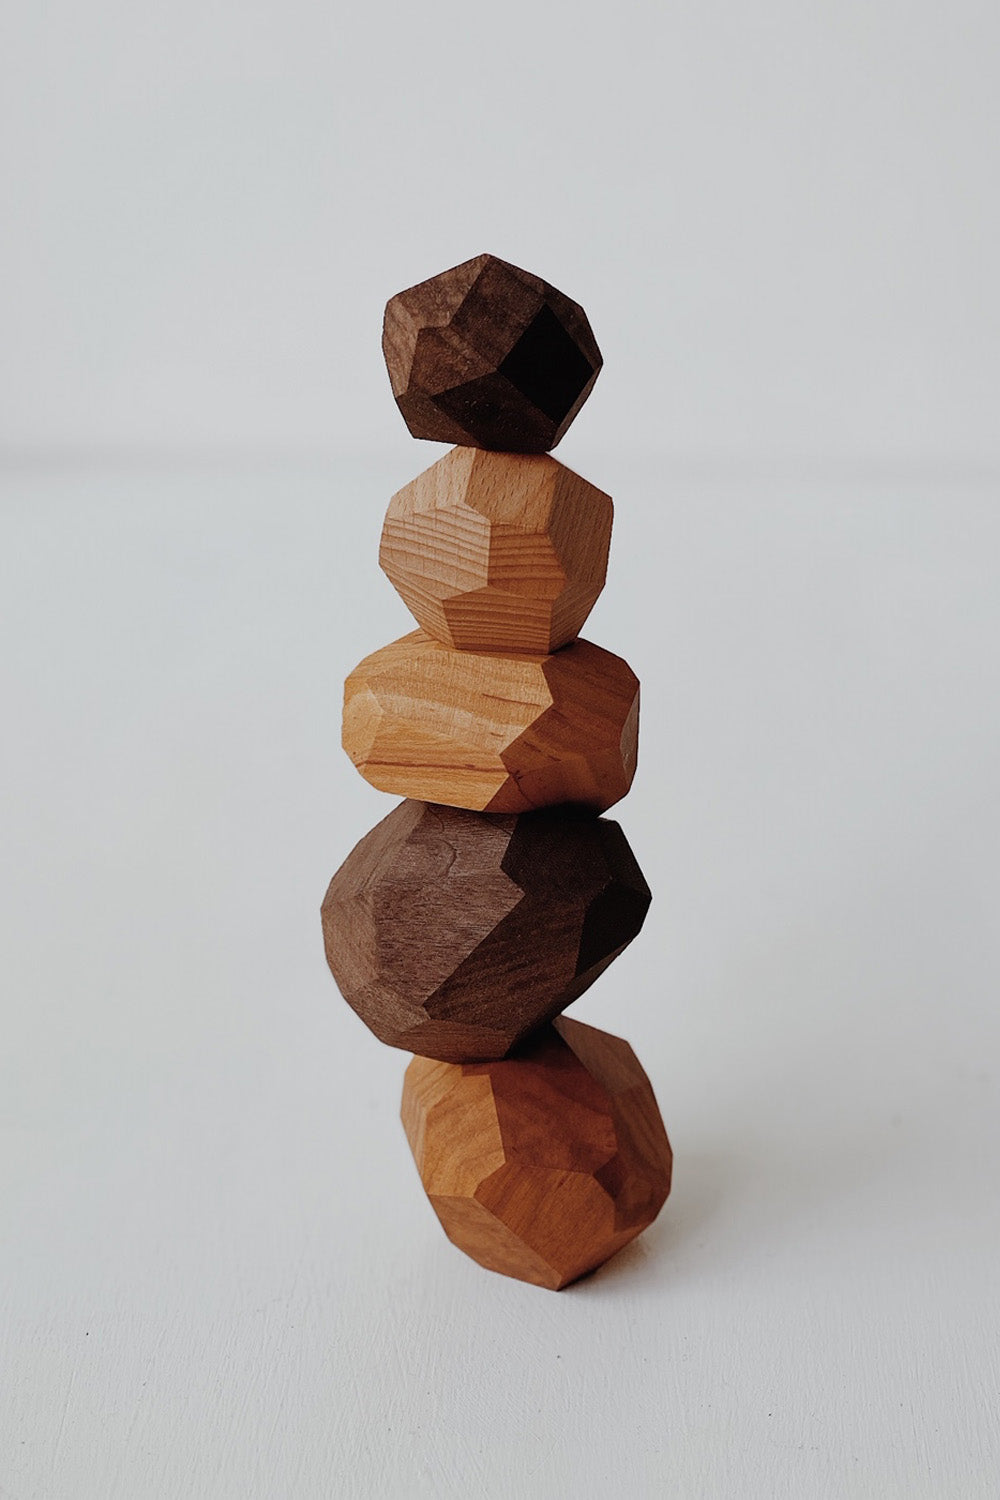 Tumi-isi Balancing Blocks - Cherry Wood